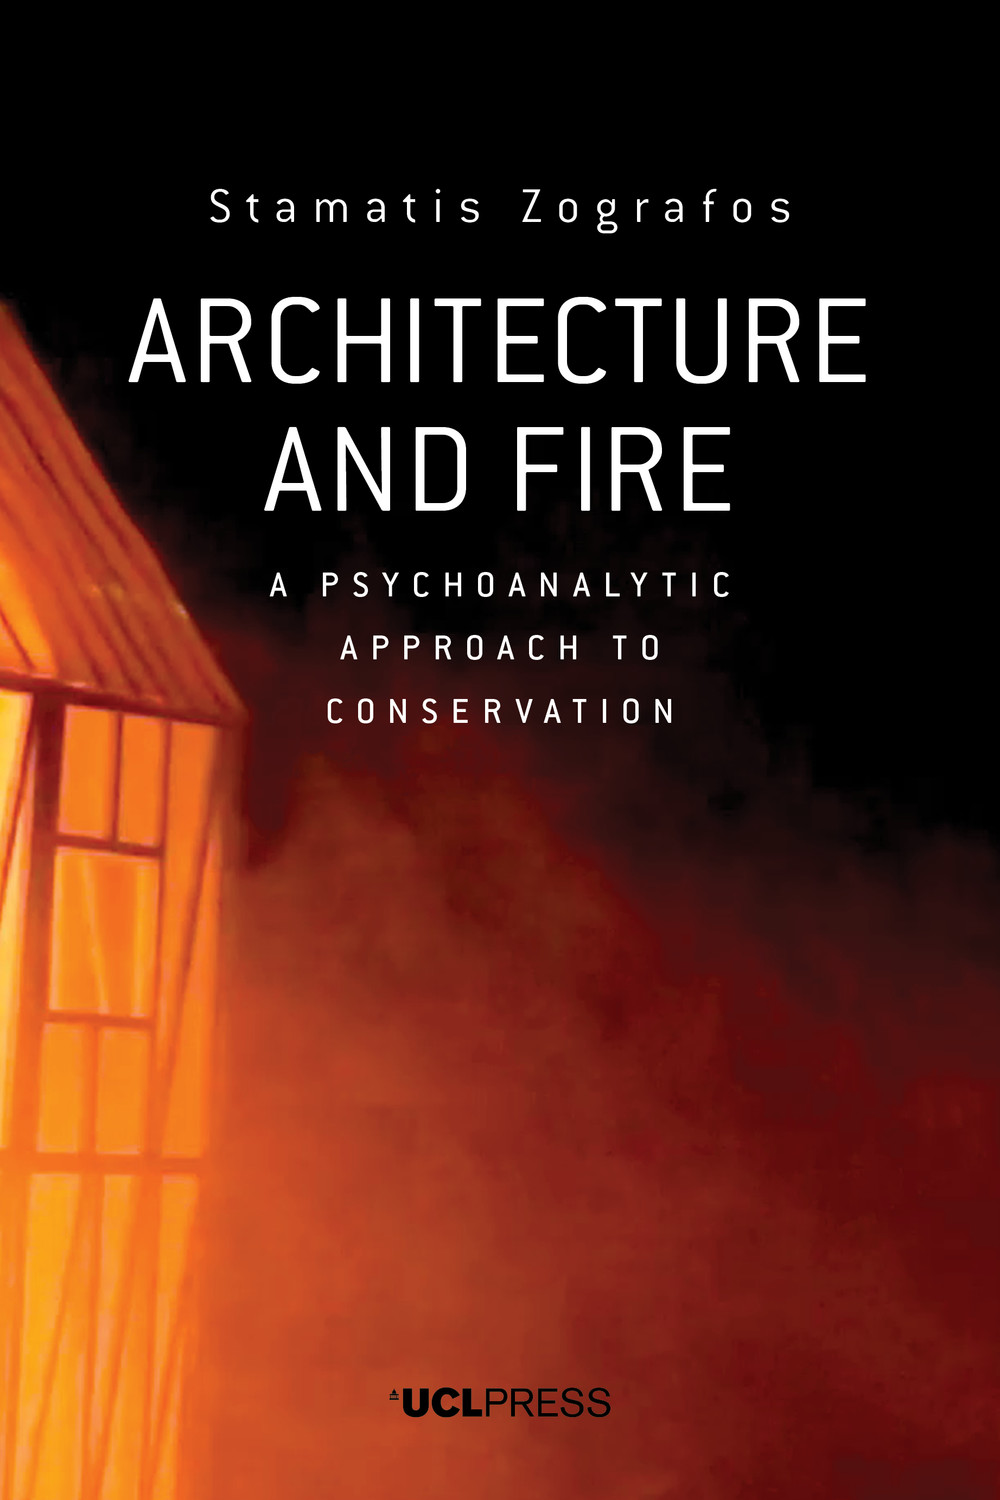 Architecture and Fire